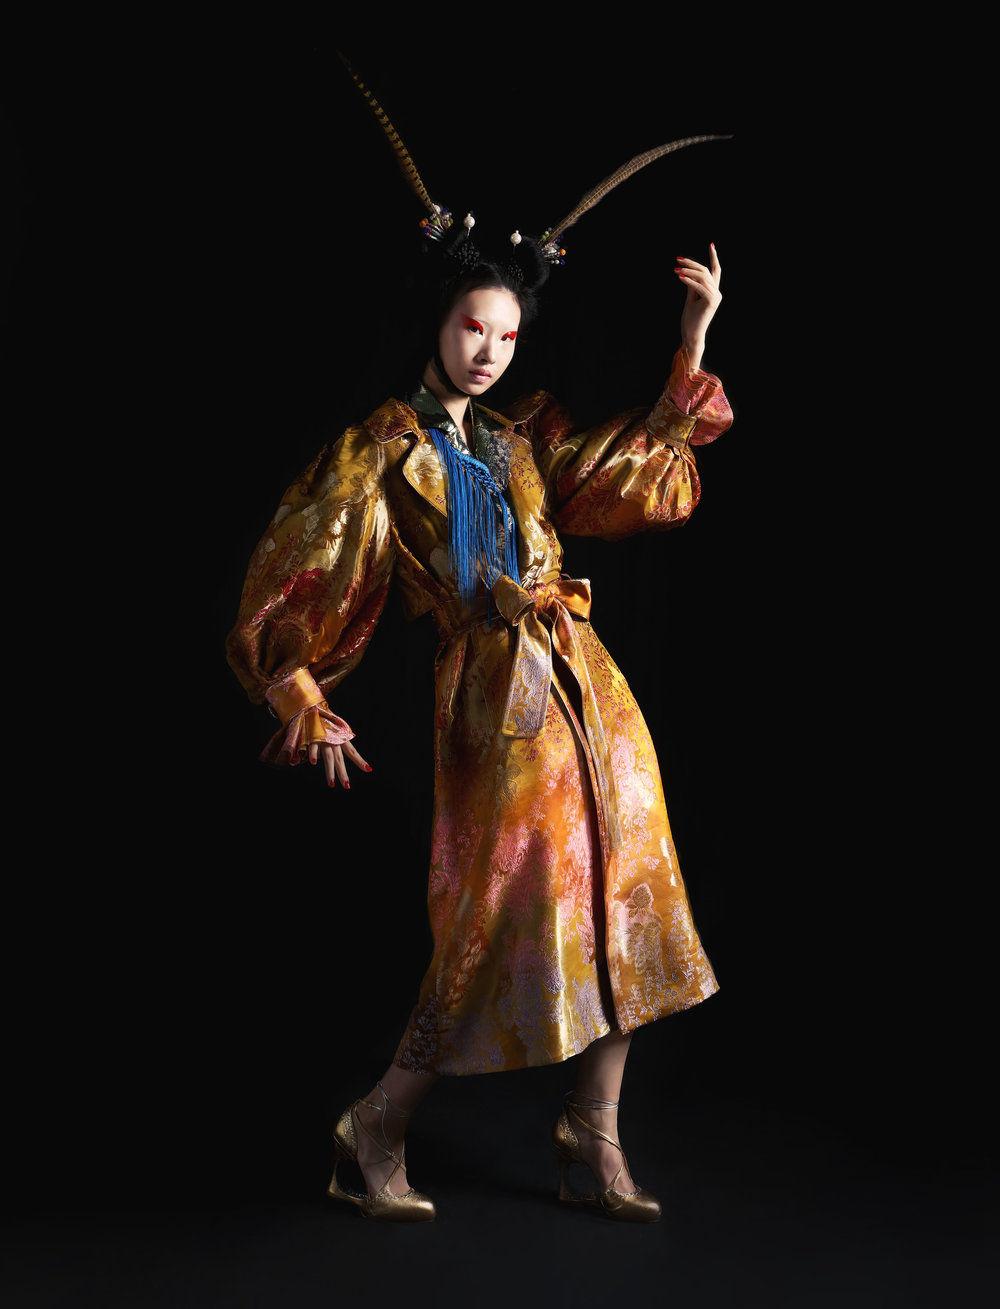 Nick Chan Stylist SCMP Style Magazine Chinese opera Kabuki theatre Fashion Editorial 2.jpg